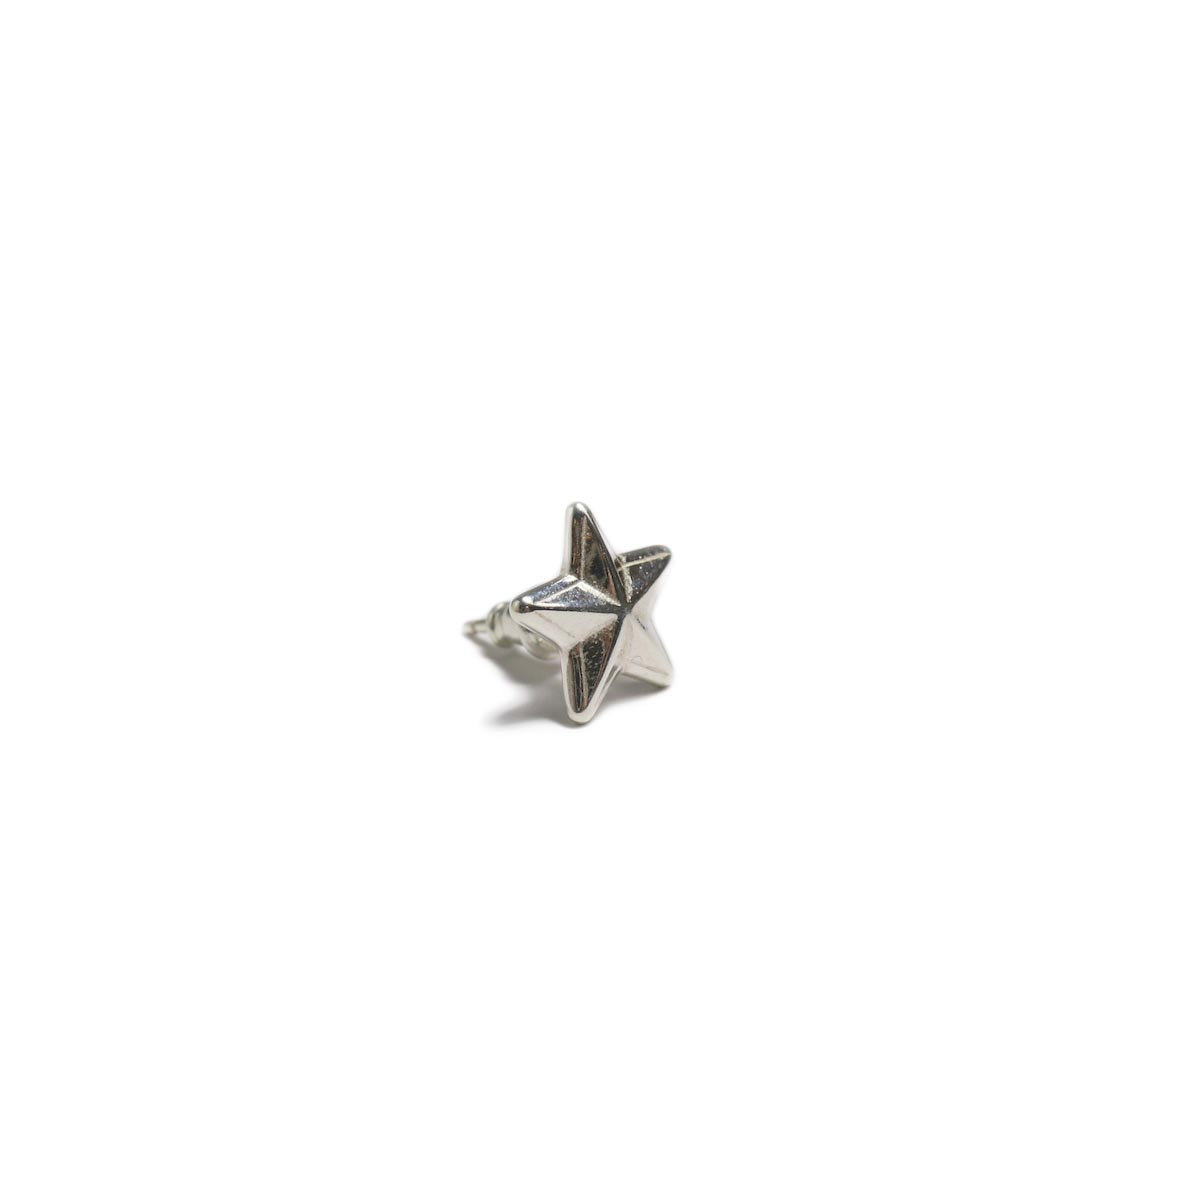 END / Rim Star Pierce